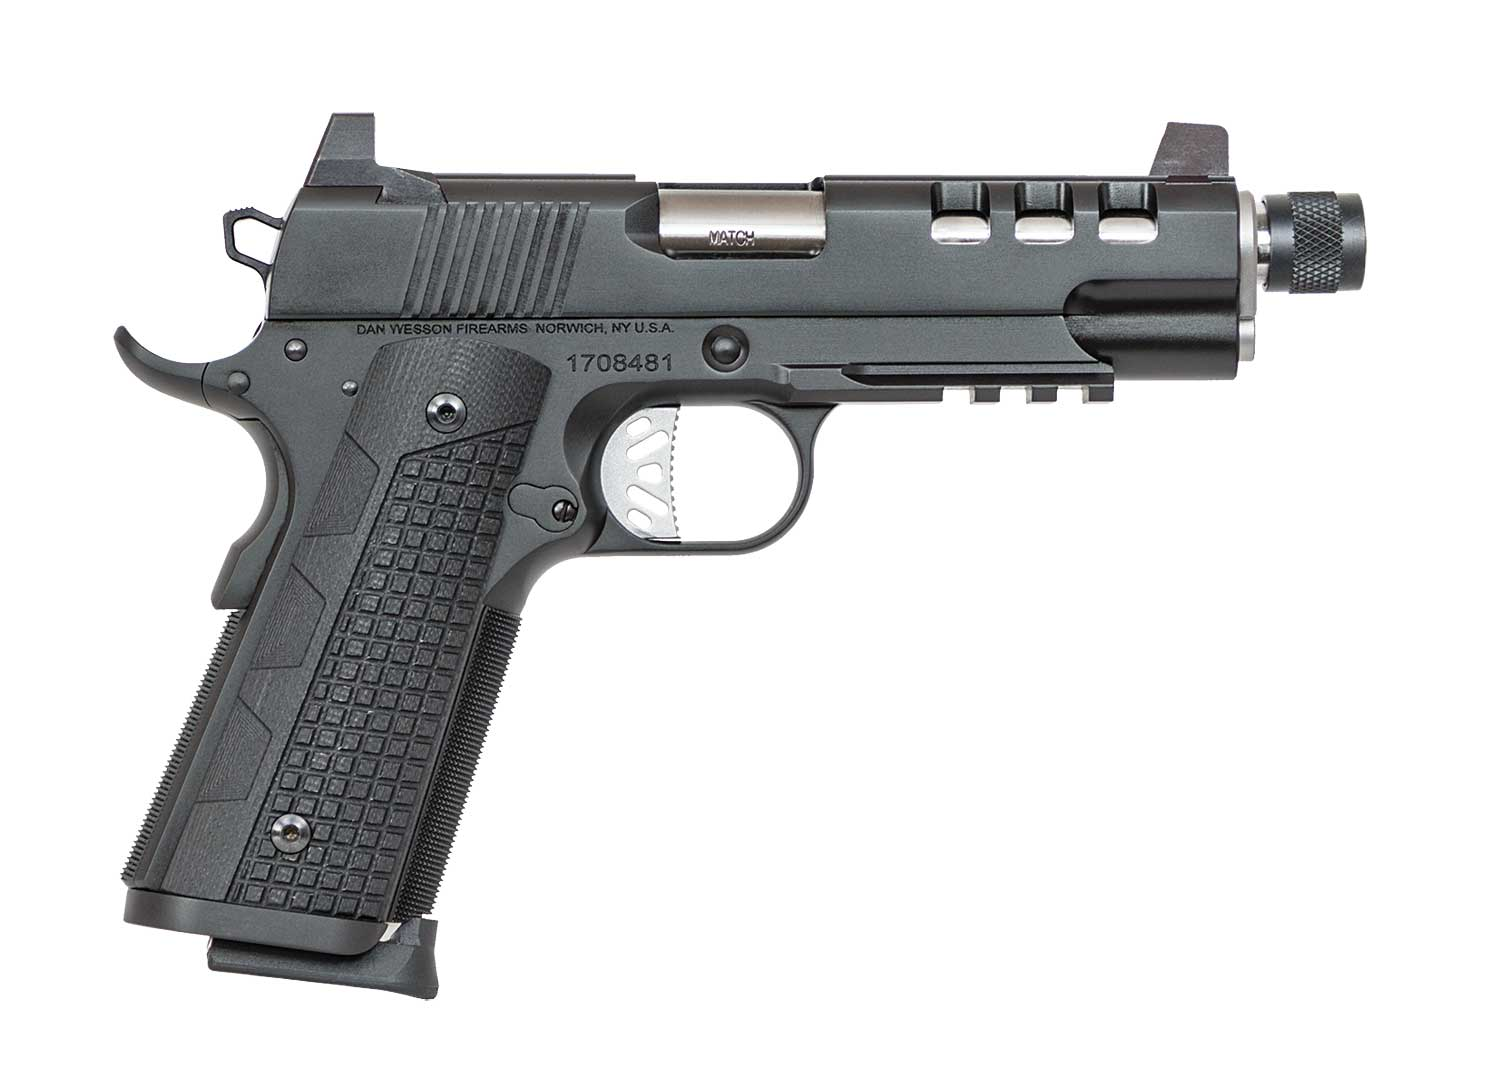 Suppressor-ready Dan Wesson Discretion 1911